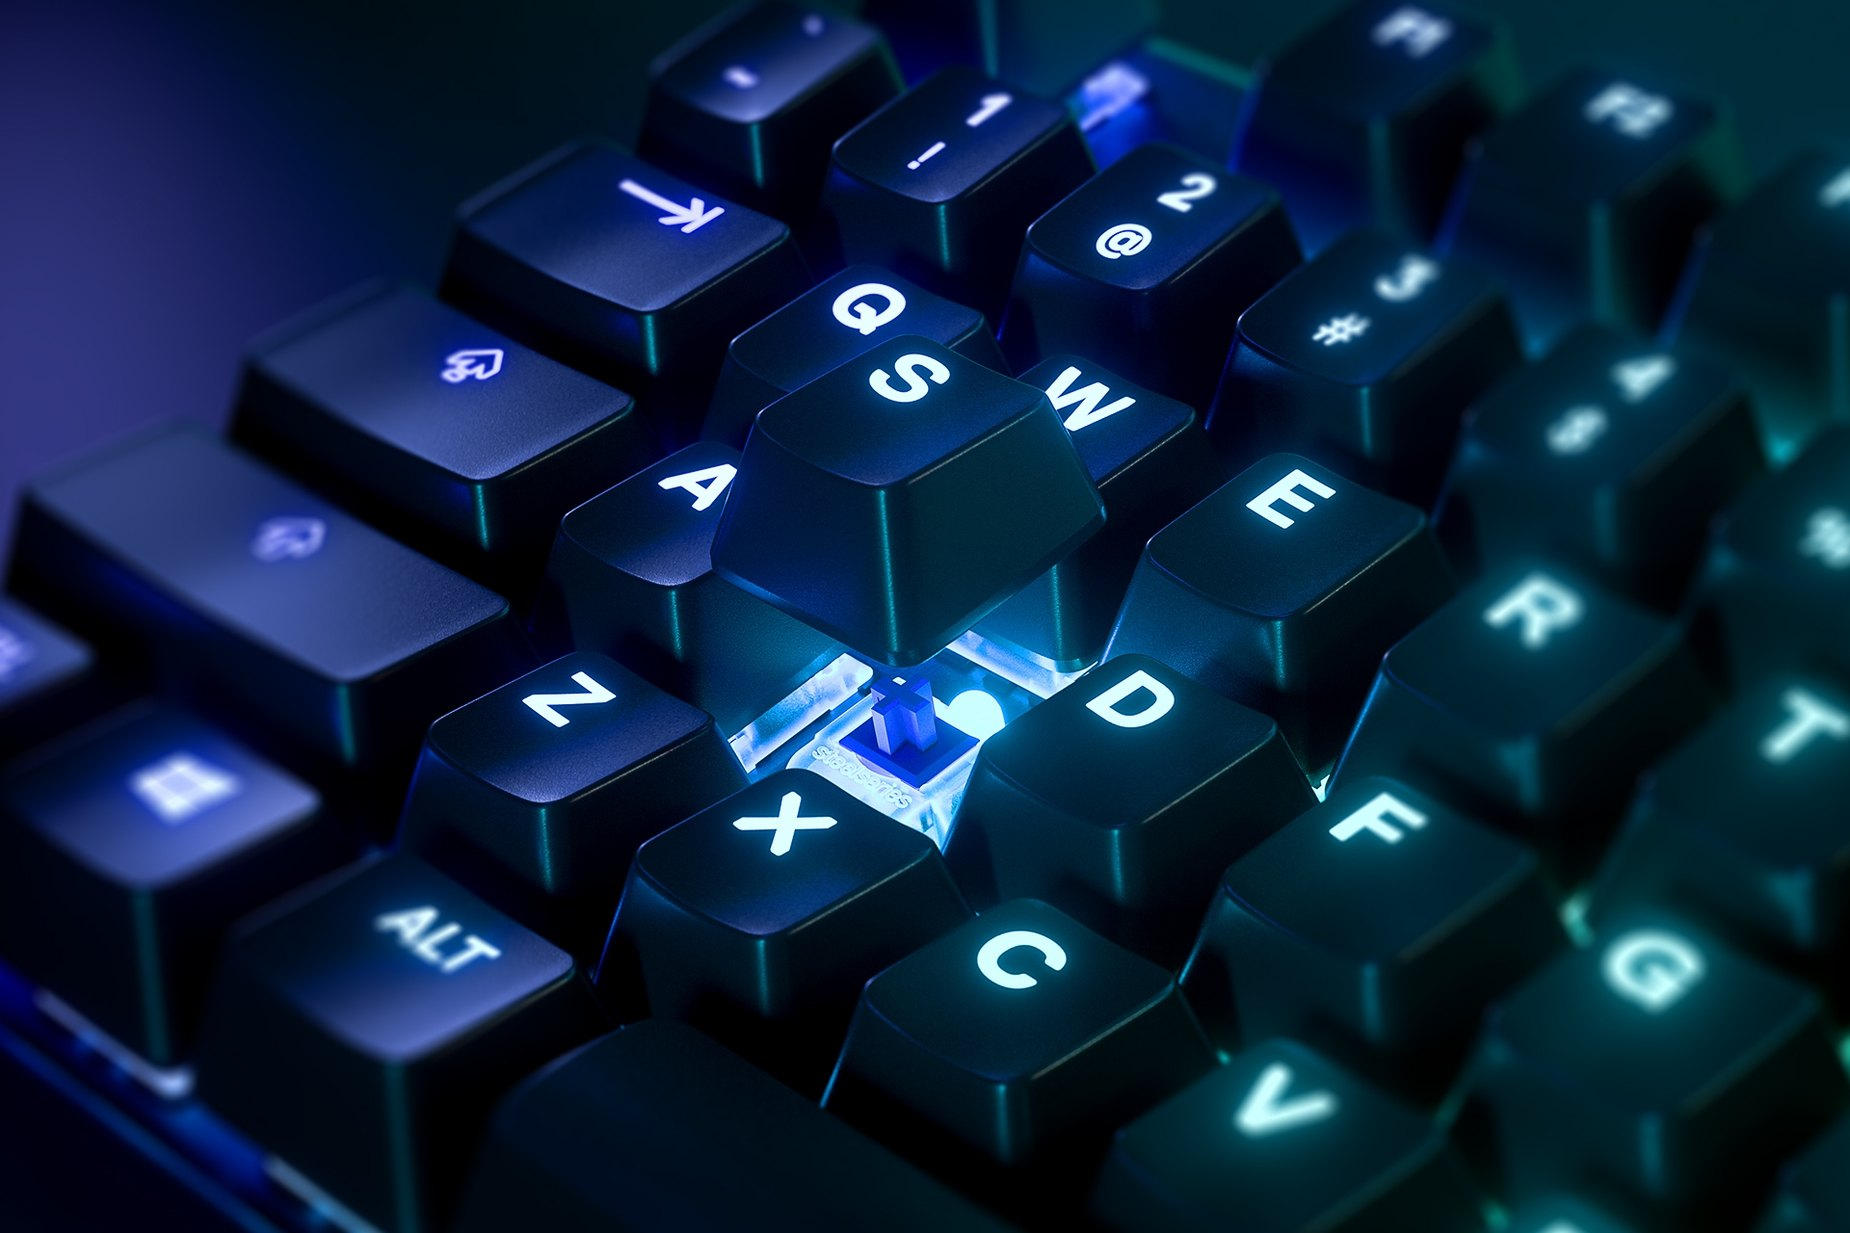 Zoomed in view of a single key on the Nordic-Apex 7 TKL (Blue Switch) gaming keyboard, the key is raised up to show the SteelSeries QX2 Mechanical RGB Switch underneath